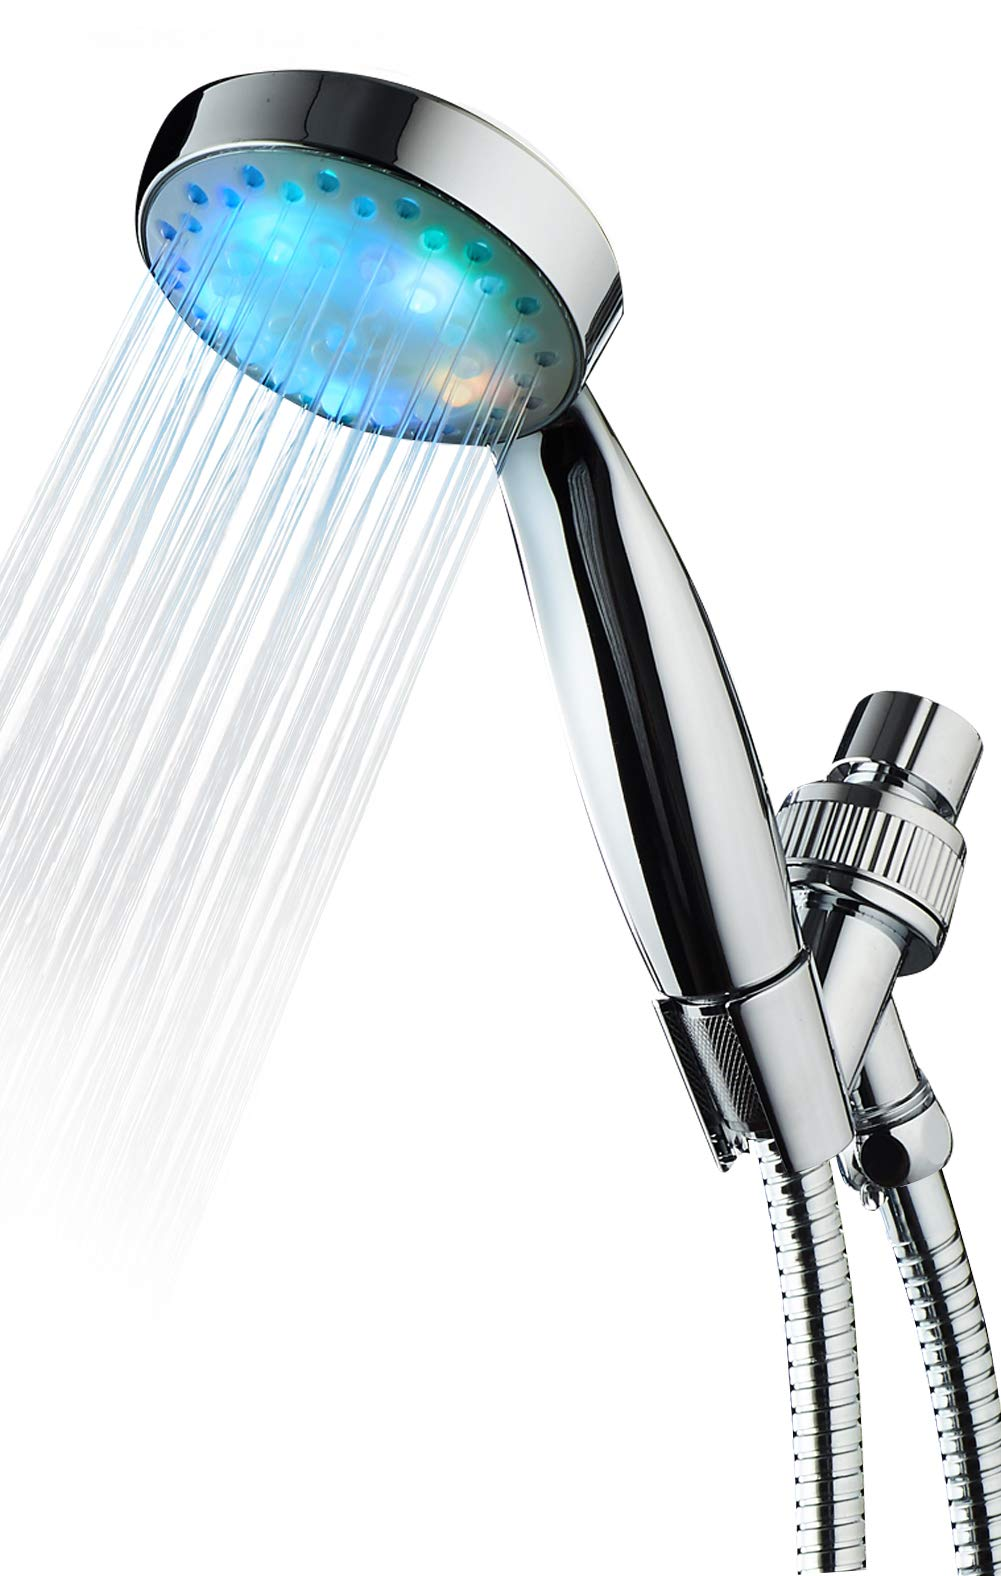 KAIREY High Pressure Led Handheld Shower Head 7 Color Glow Light Change Automatically Polished Chrome with 60 Inches Stainless Steel Hose and Adjustable Bracket